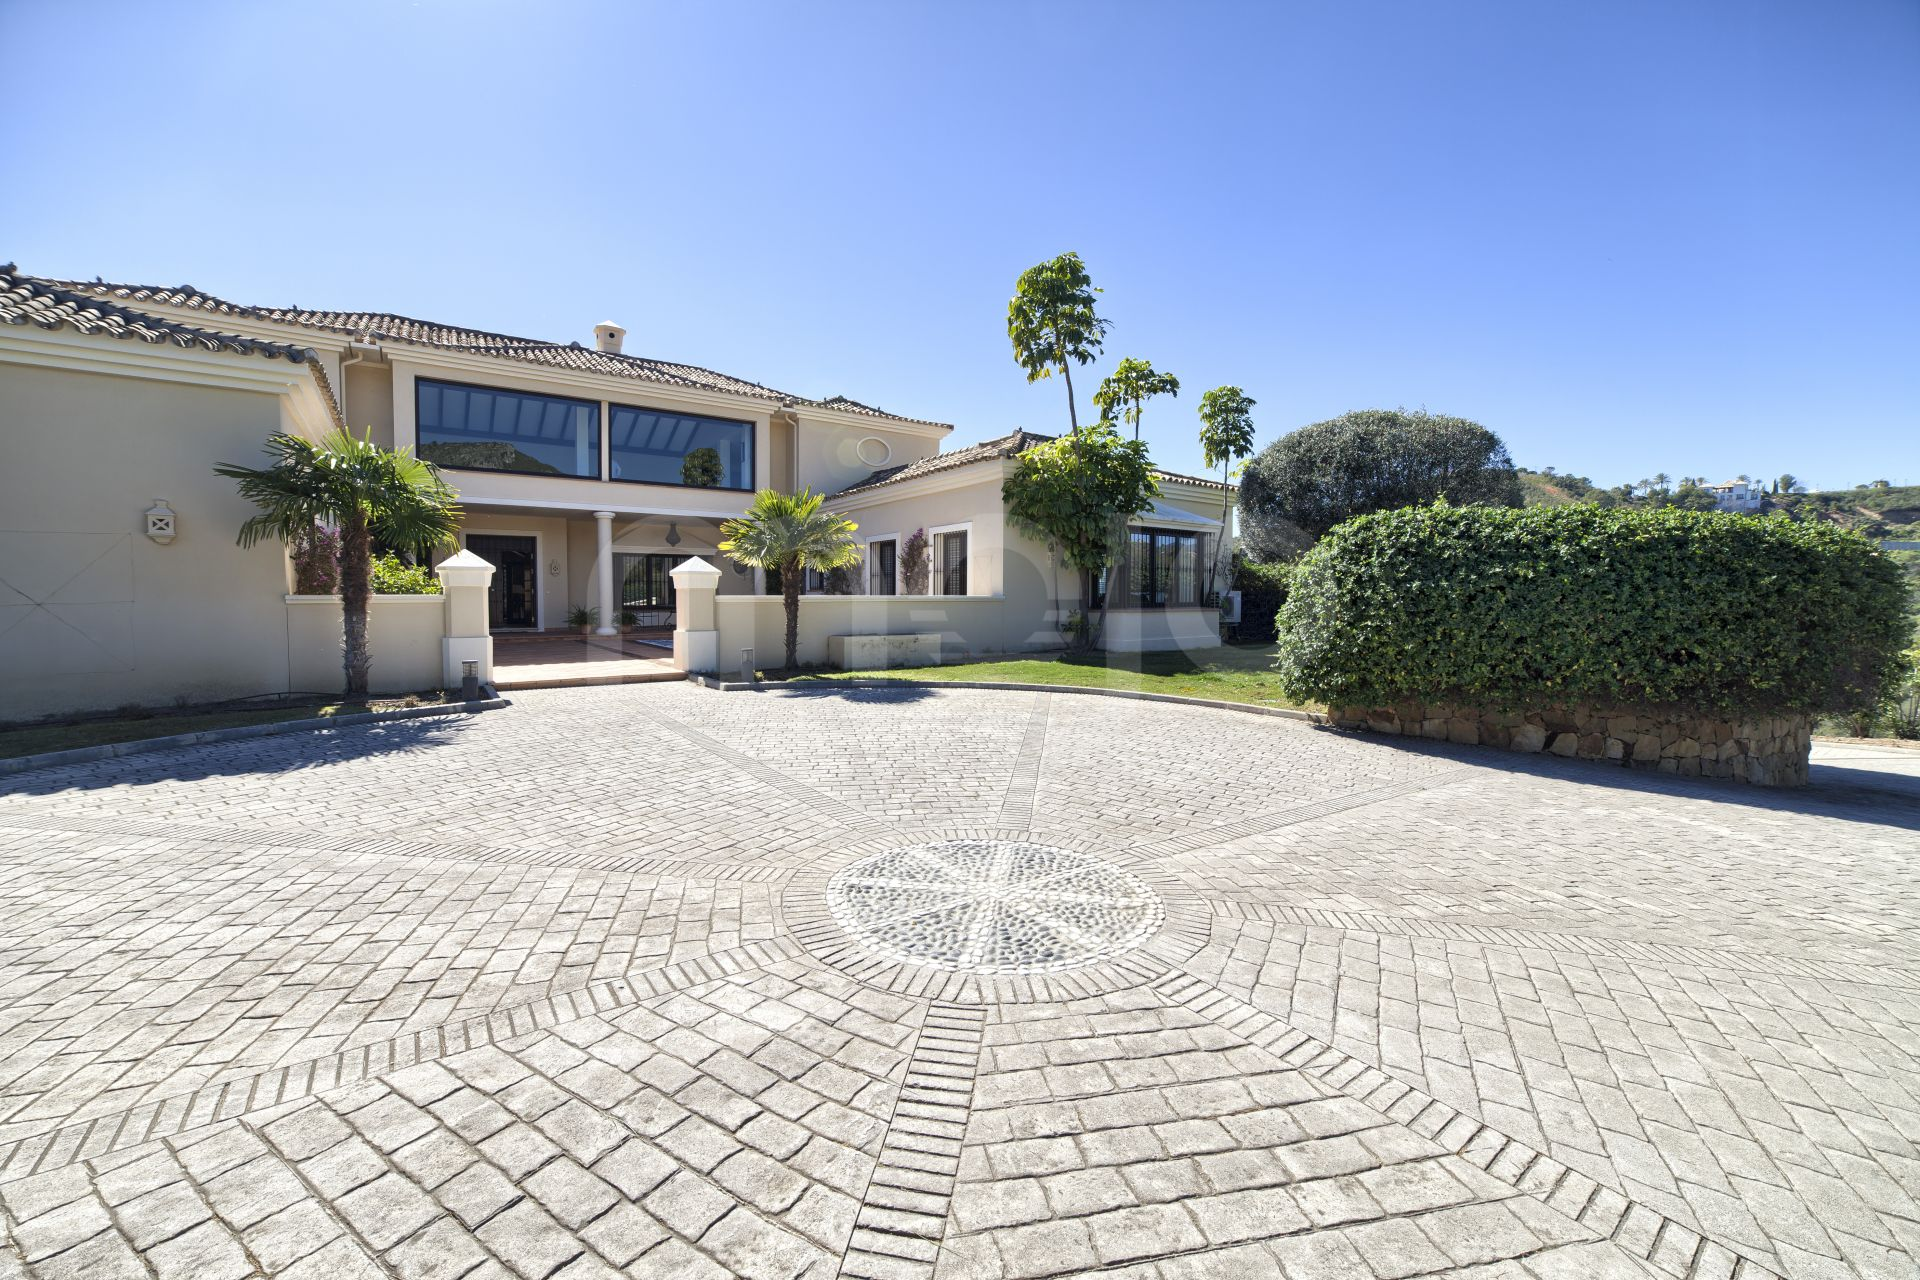 SUMPTUOUS 7 BEDROOM MANSION IN LARGE GROUNDS NEAR MARBELLA GOLF & COUNTRY CLUB BENAHAVIS